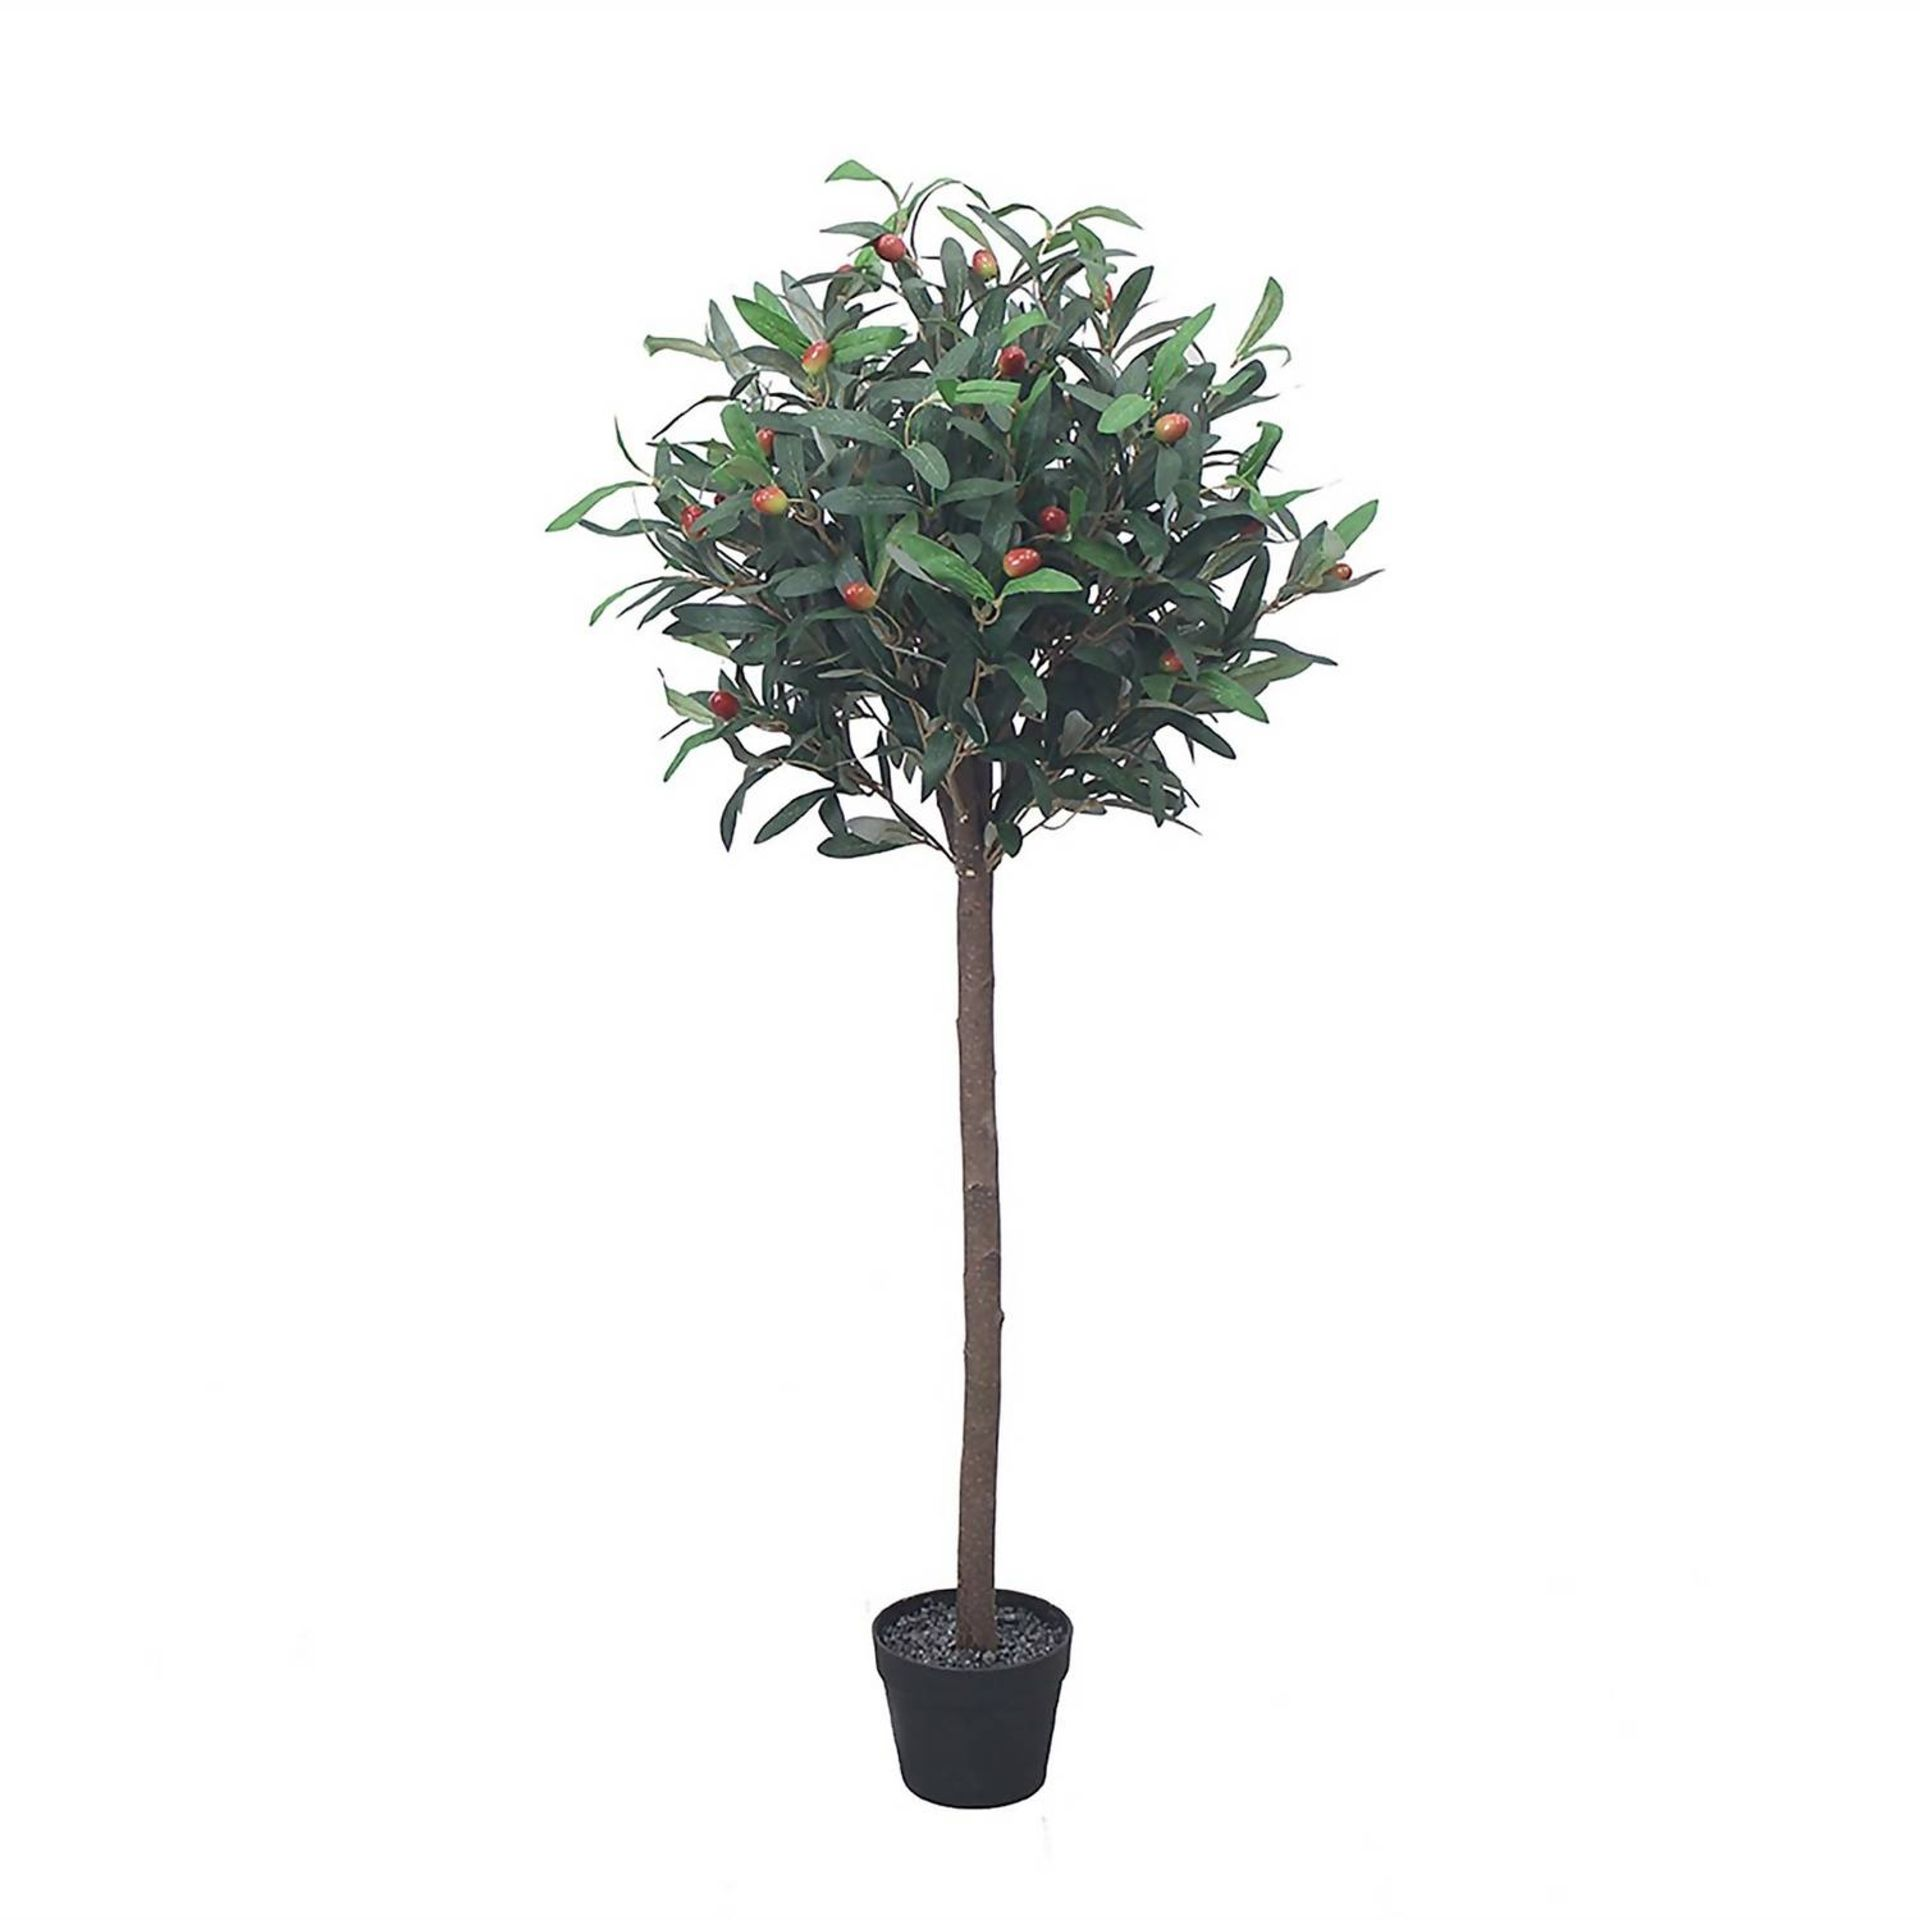 (4P) 3x Garden Items. 2x Artificial Olive Tree (With Tags) RRP £39 Each. 1x Maple Leaf Trellis (Sea